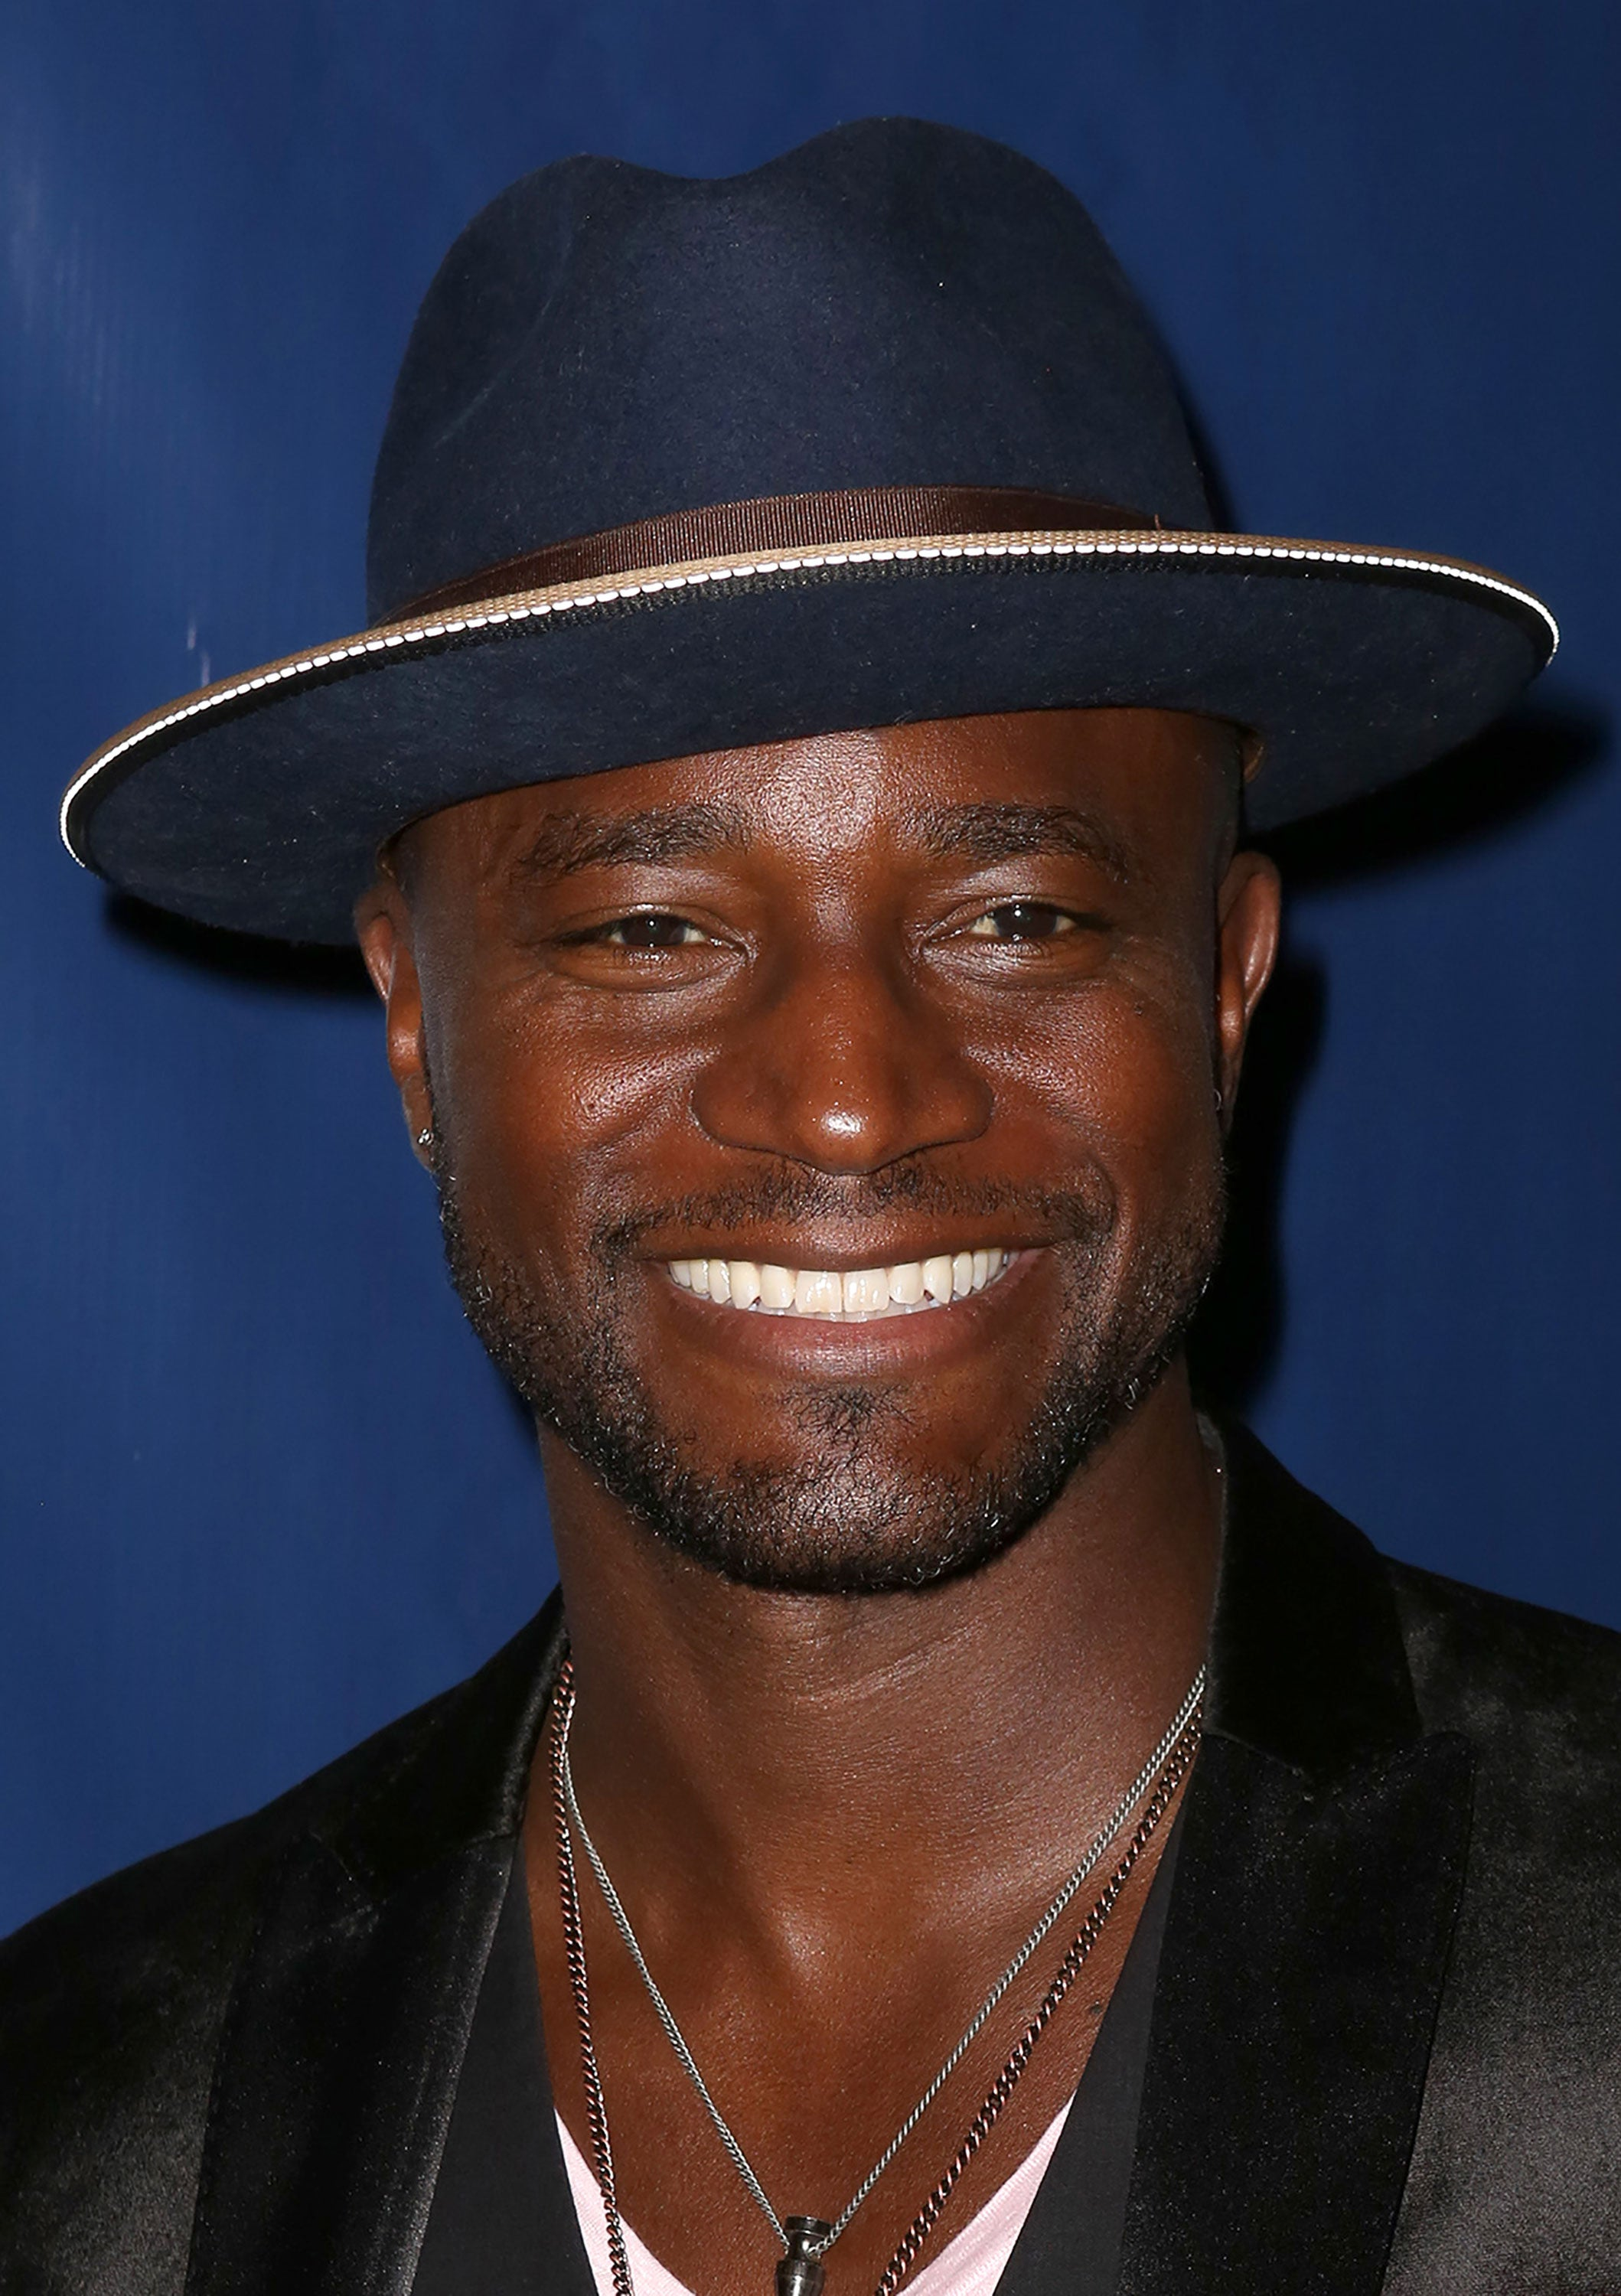 Taye Diggs Joins The Cast Of 'Empire'